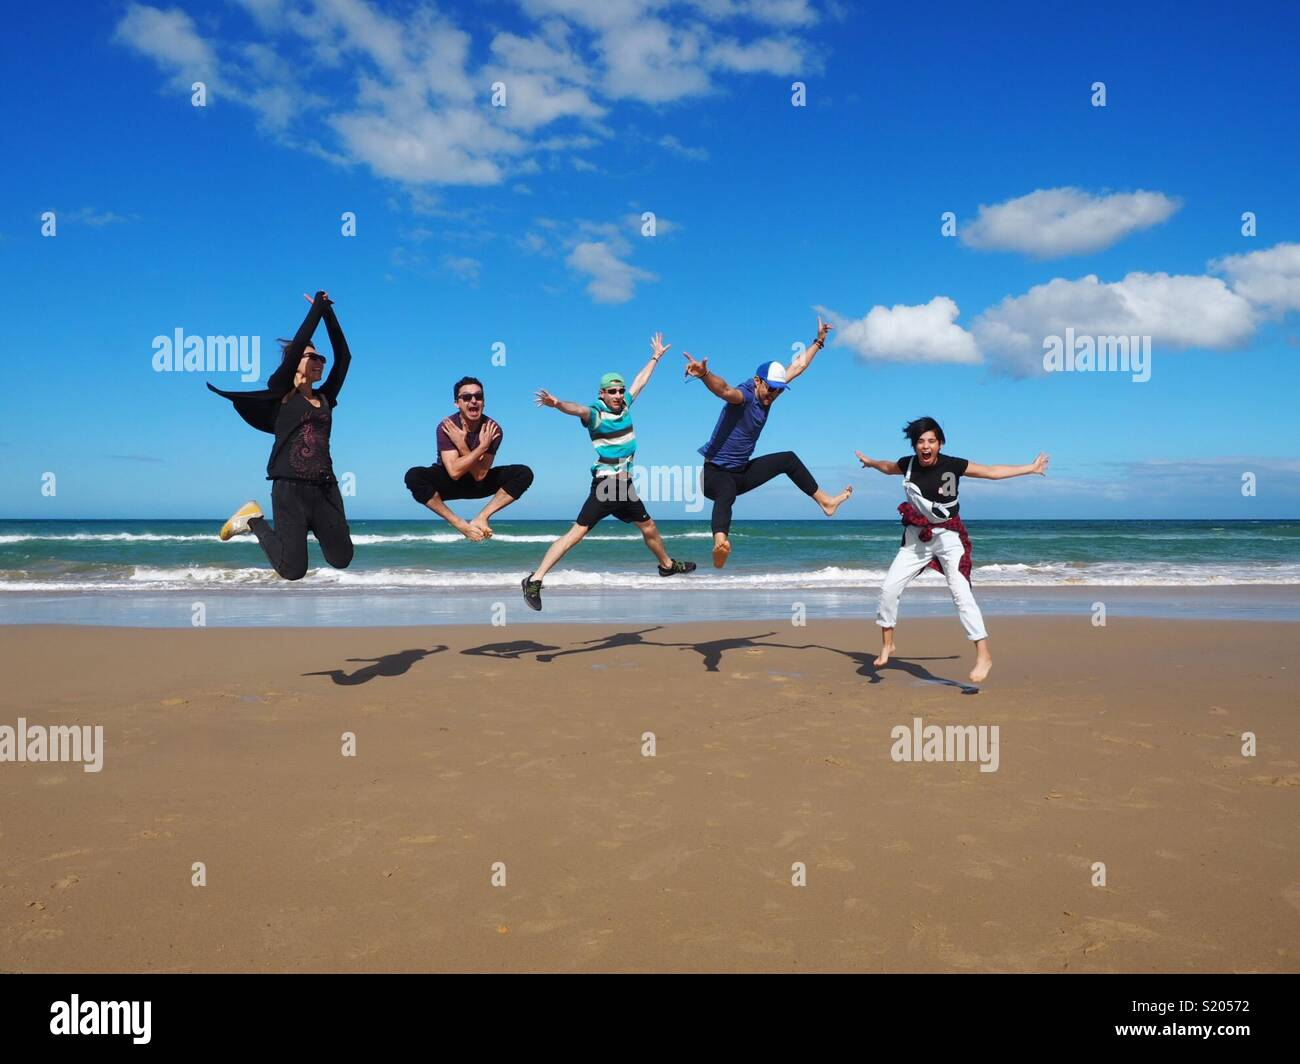 Friends having fun jumping on a beach on a sunny day - Stock Image